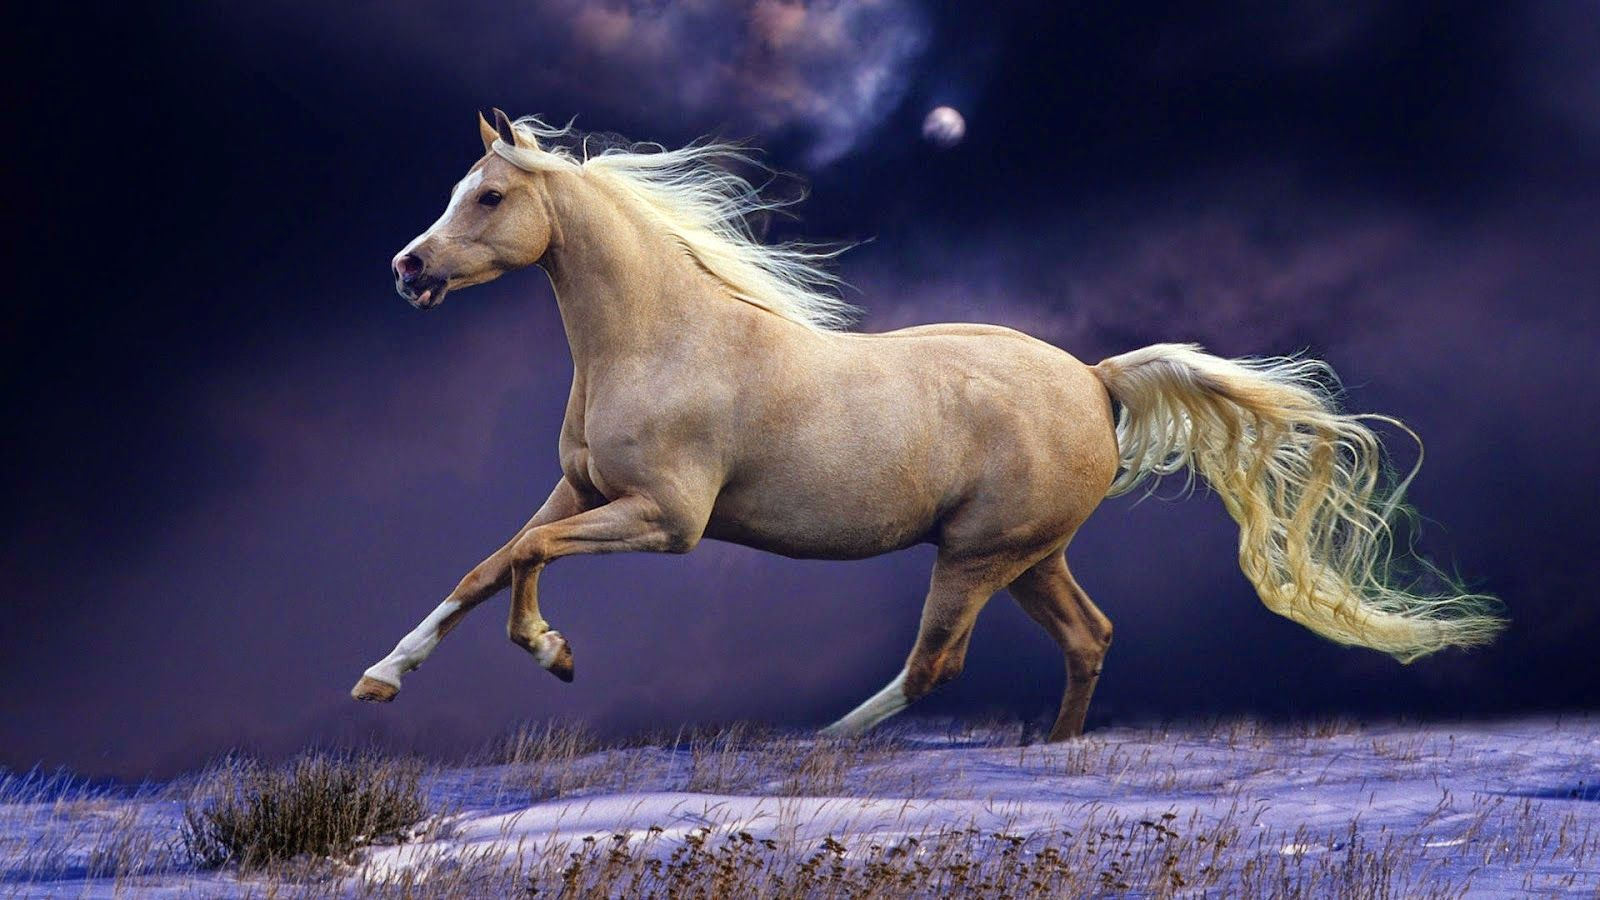 Red Horse Wallpaper Widescreen Hd Free Download Horse